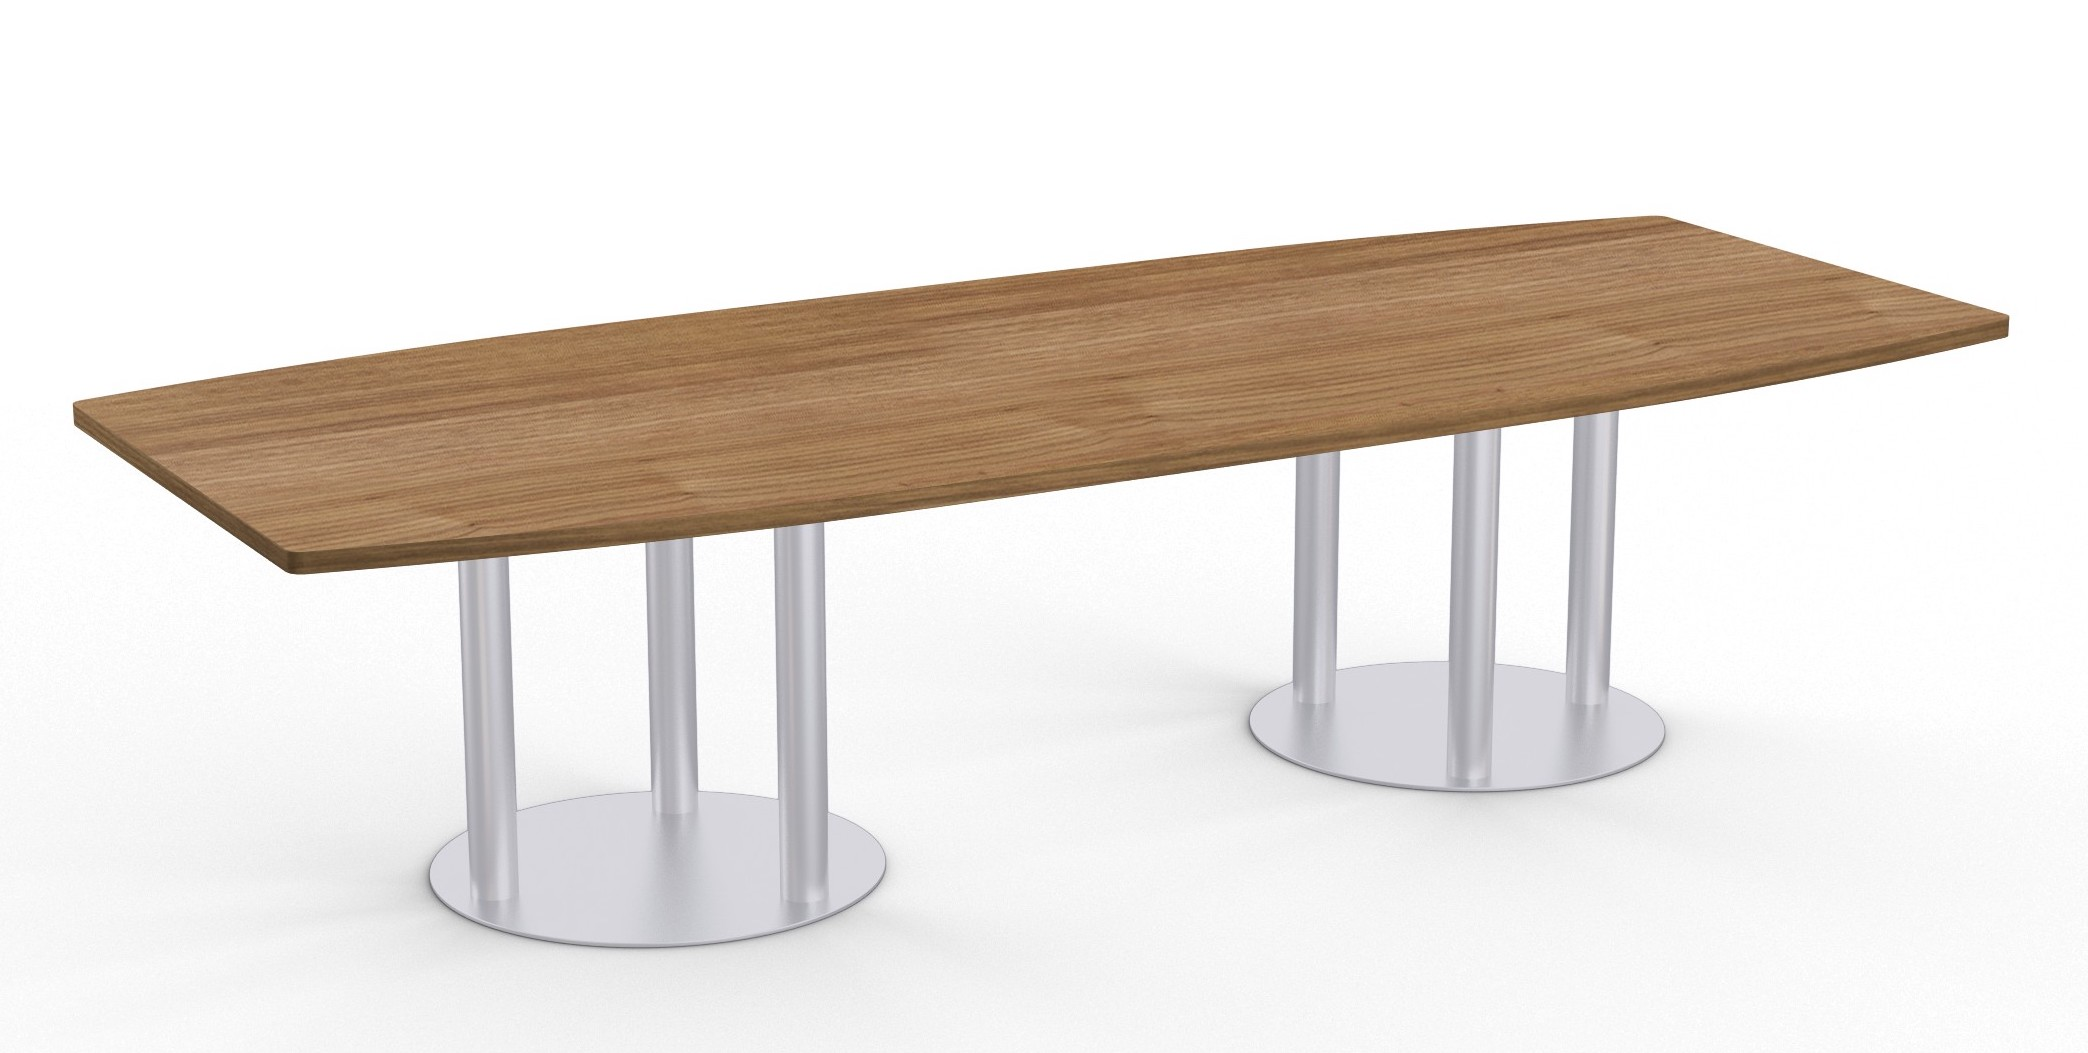 river cherry astra boat shape conference table